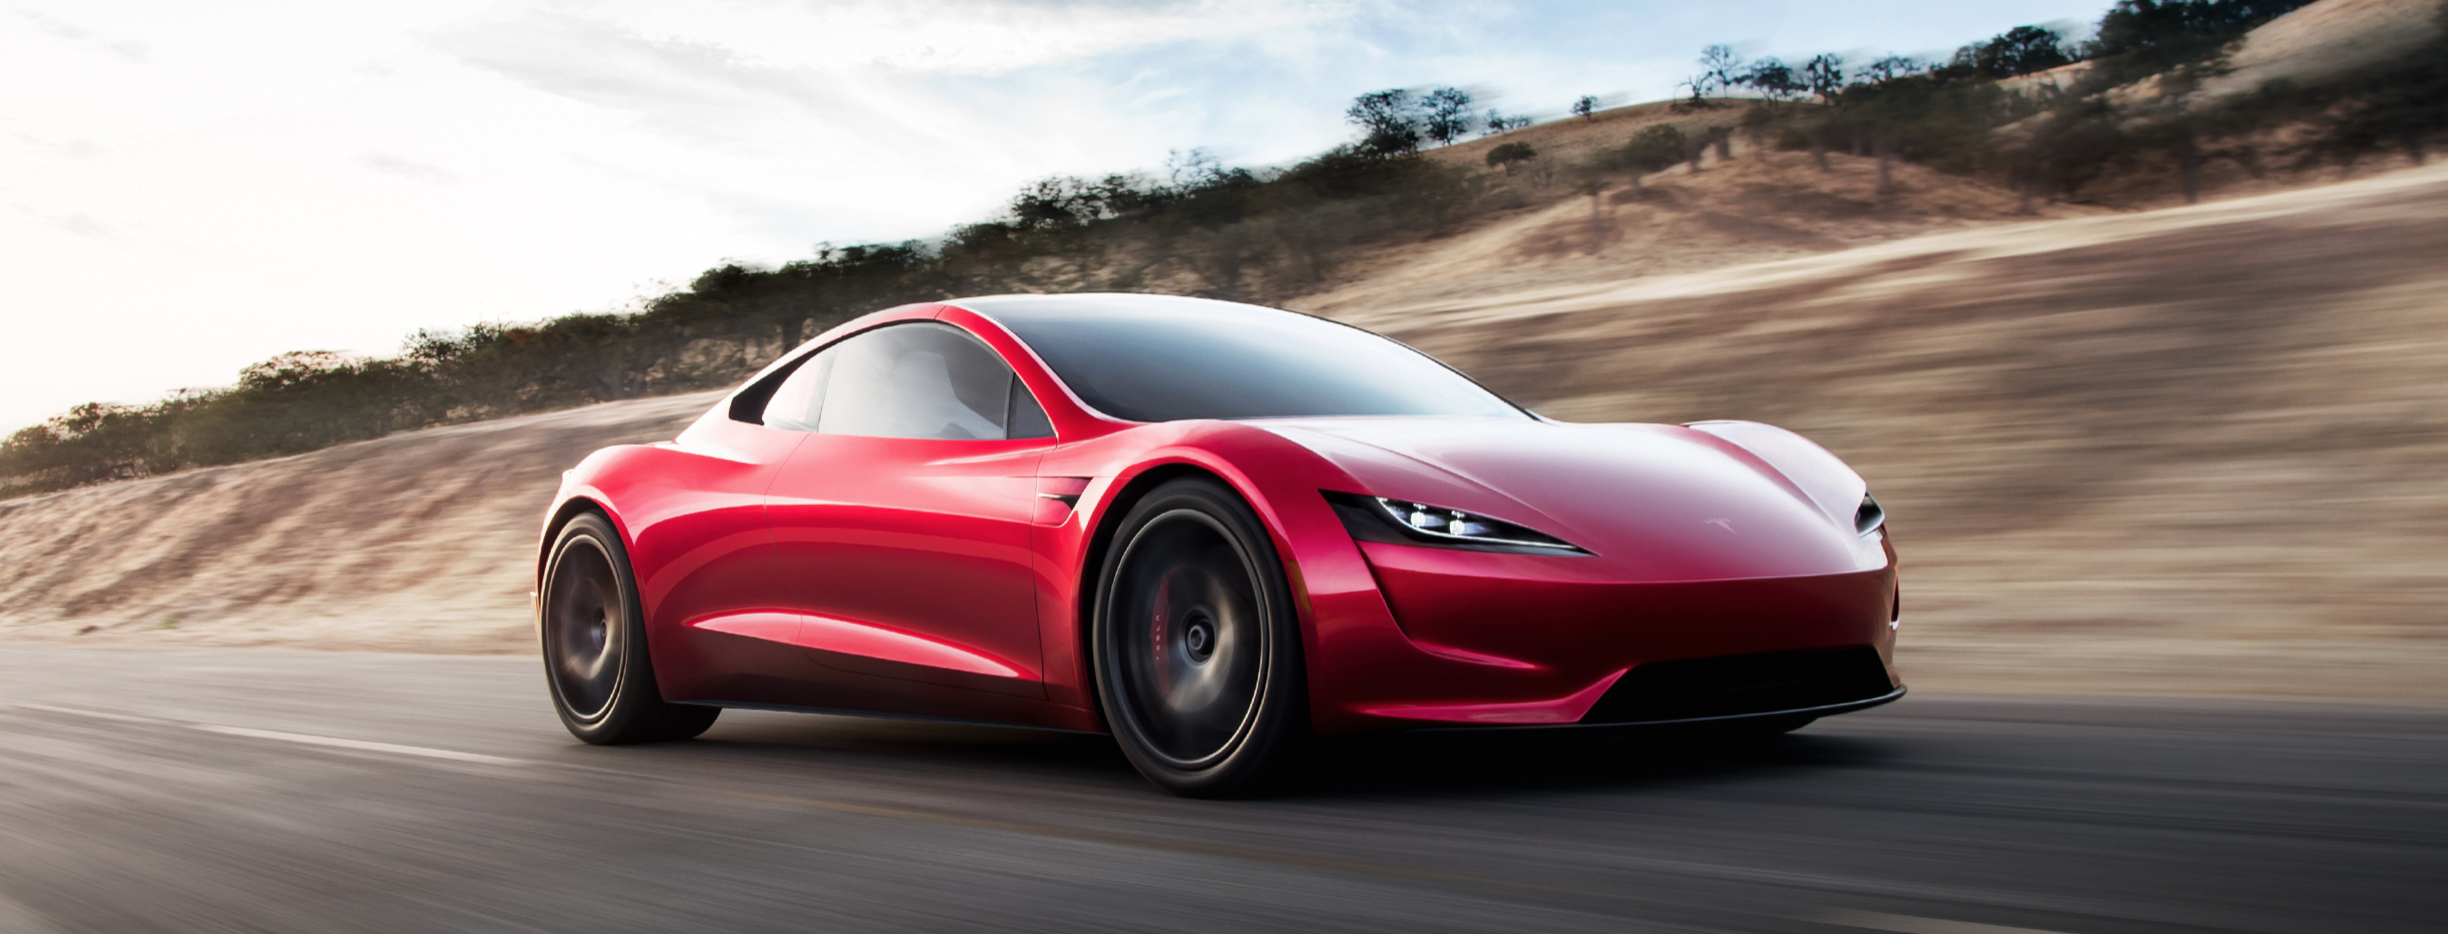 Tesla Roadster 2020: Price and Specs for the SpaceX-Upgraded